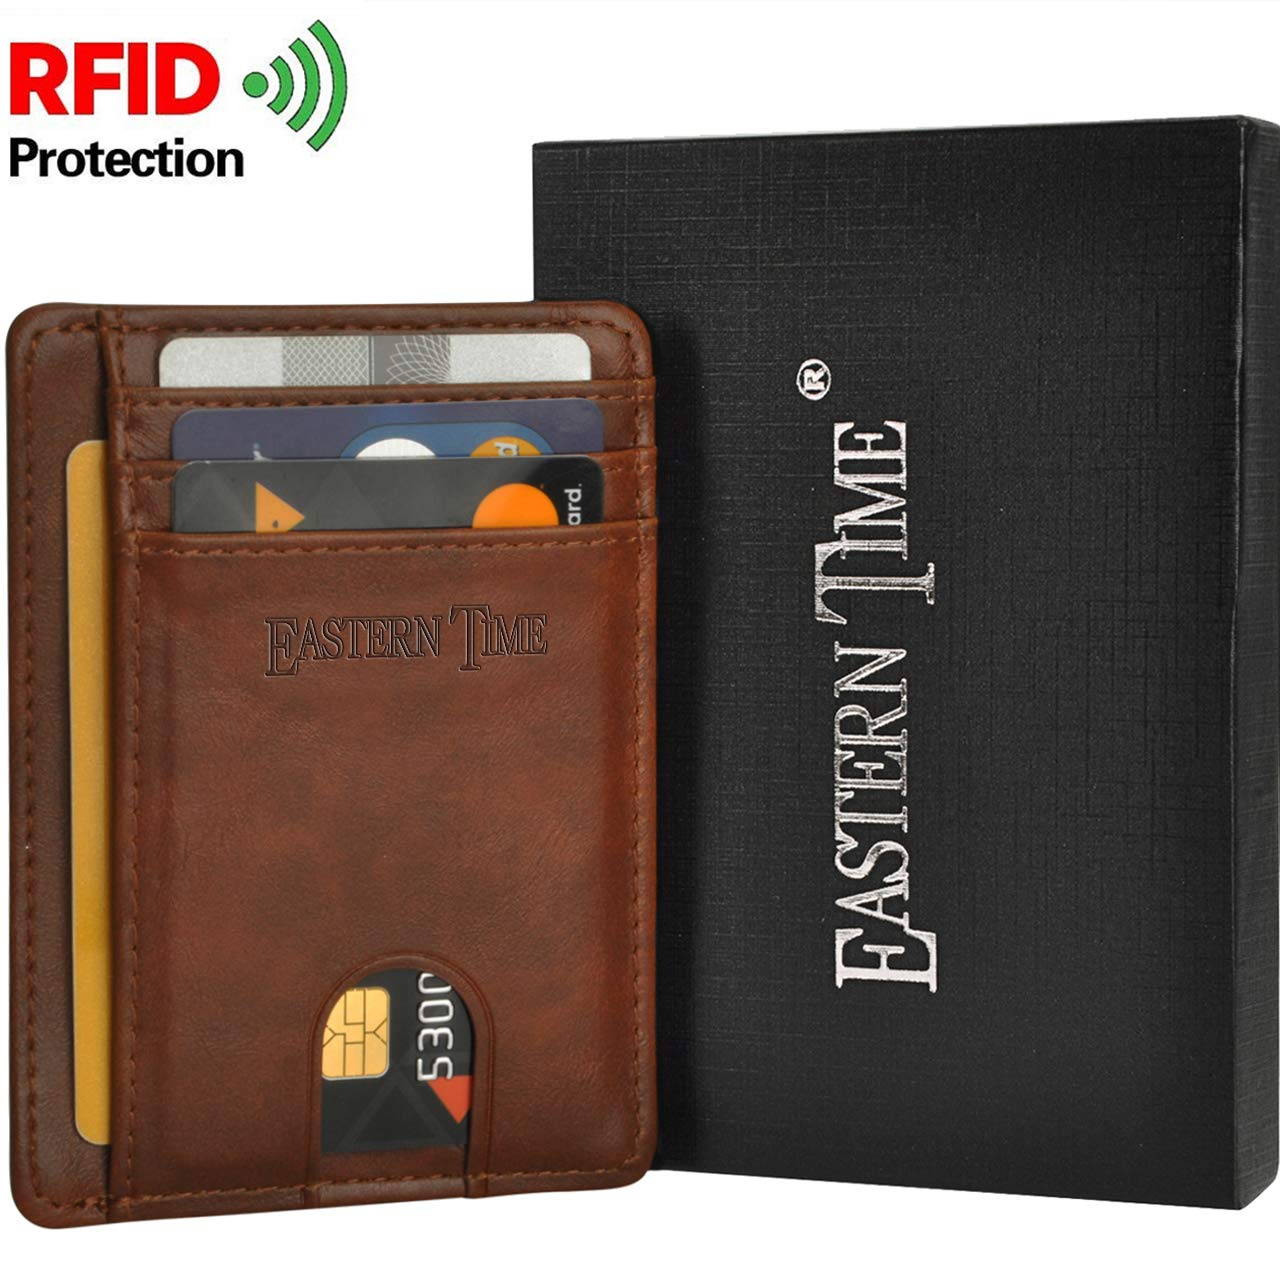 RFID-Wallets-for-Men-Front Pocket Minimalist Thin Wallet Clear ID Window Card Holder for Women(Brown)